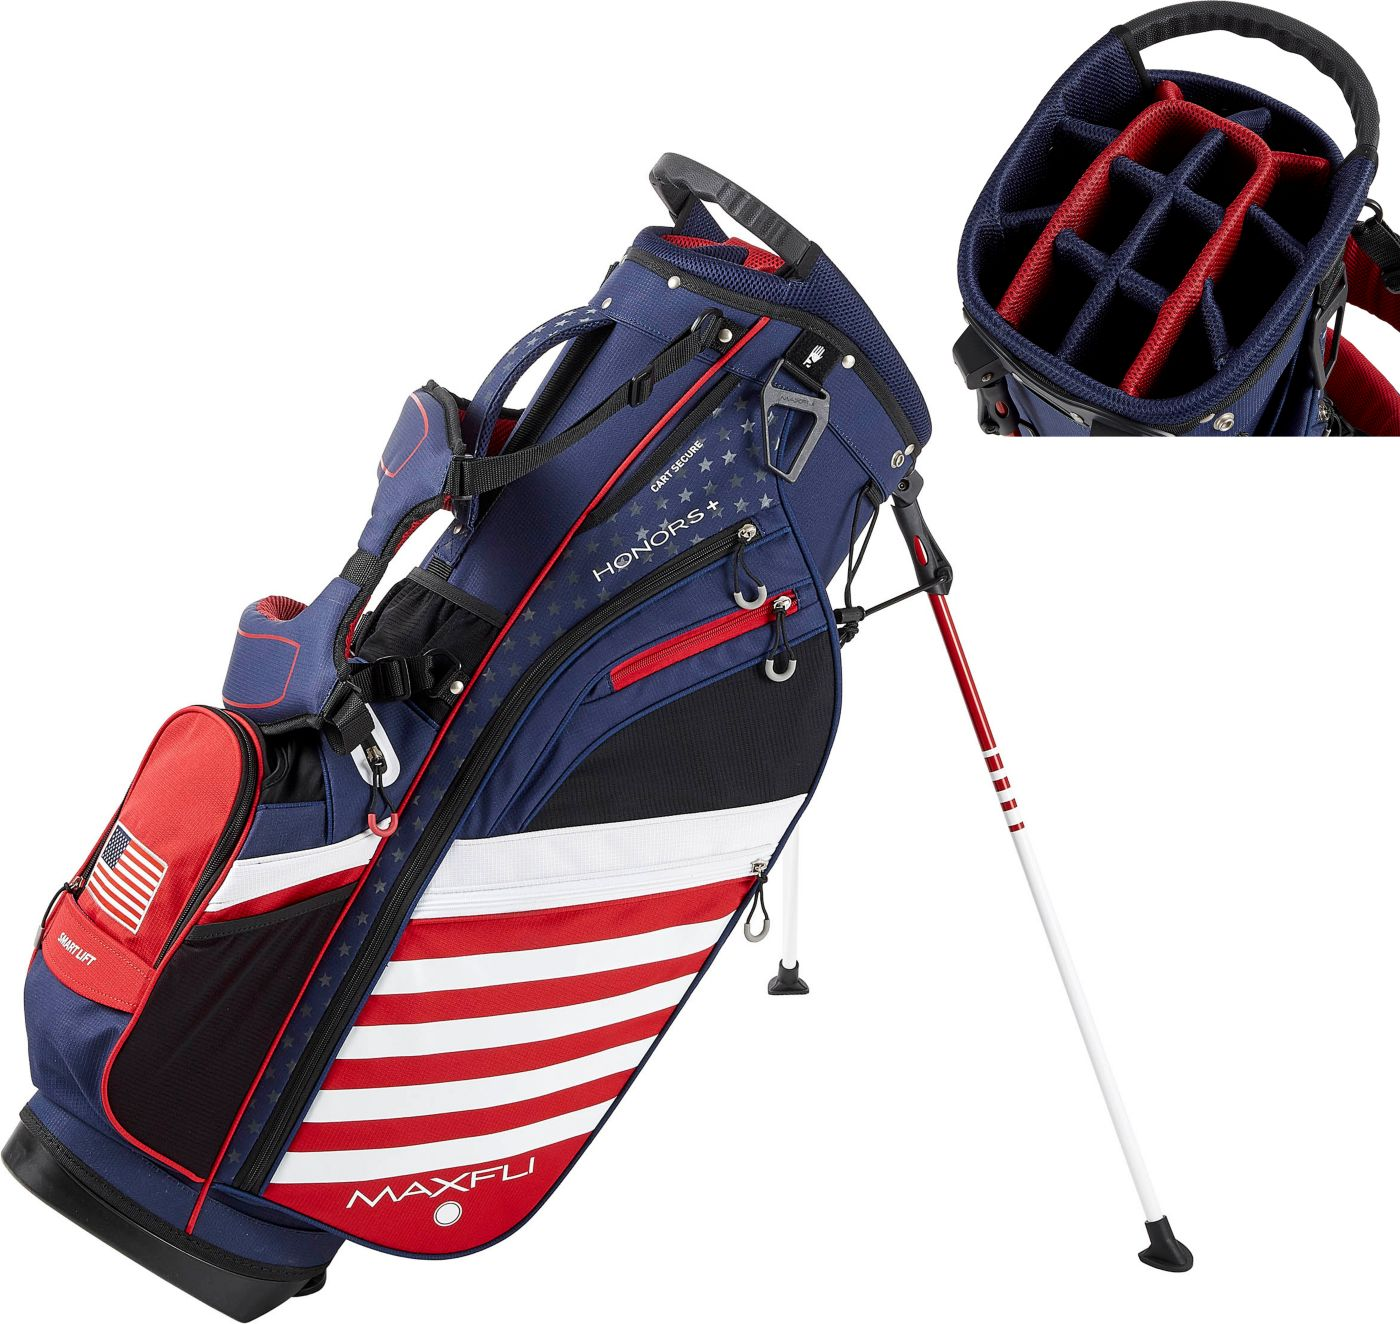 Maxfli 2019 Honors Plus Golf Stand Bag